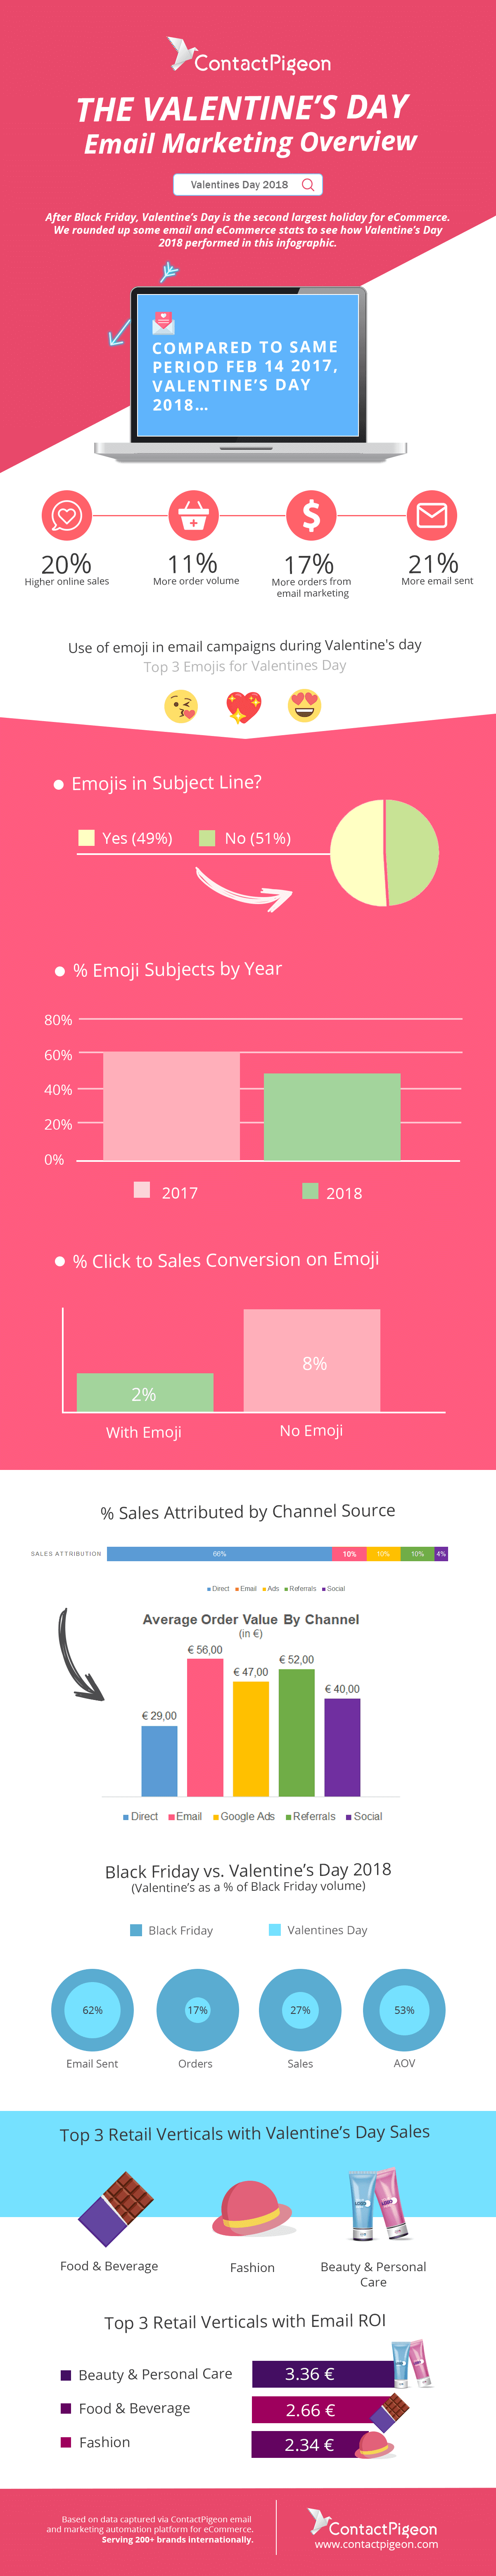 Valentine's Day Infographic: Email Marketing & eCommerce Insights